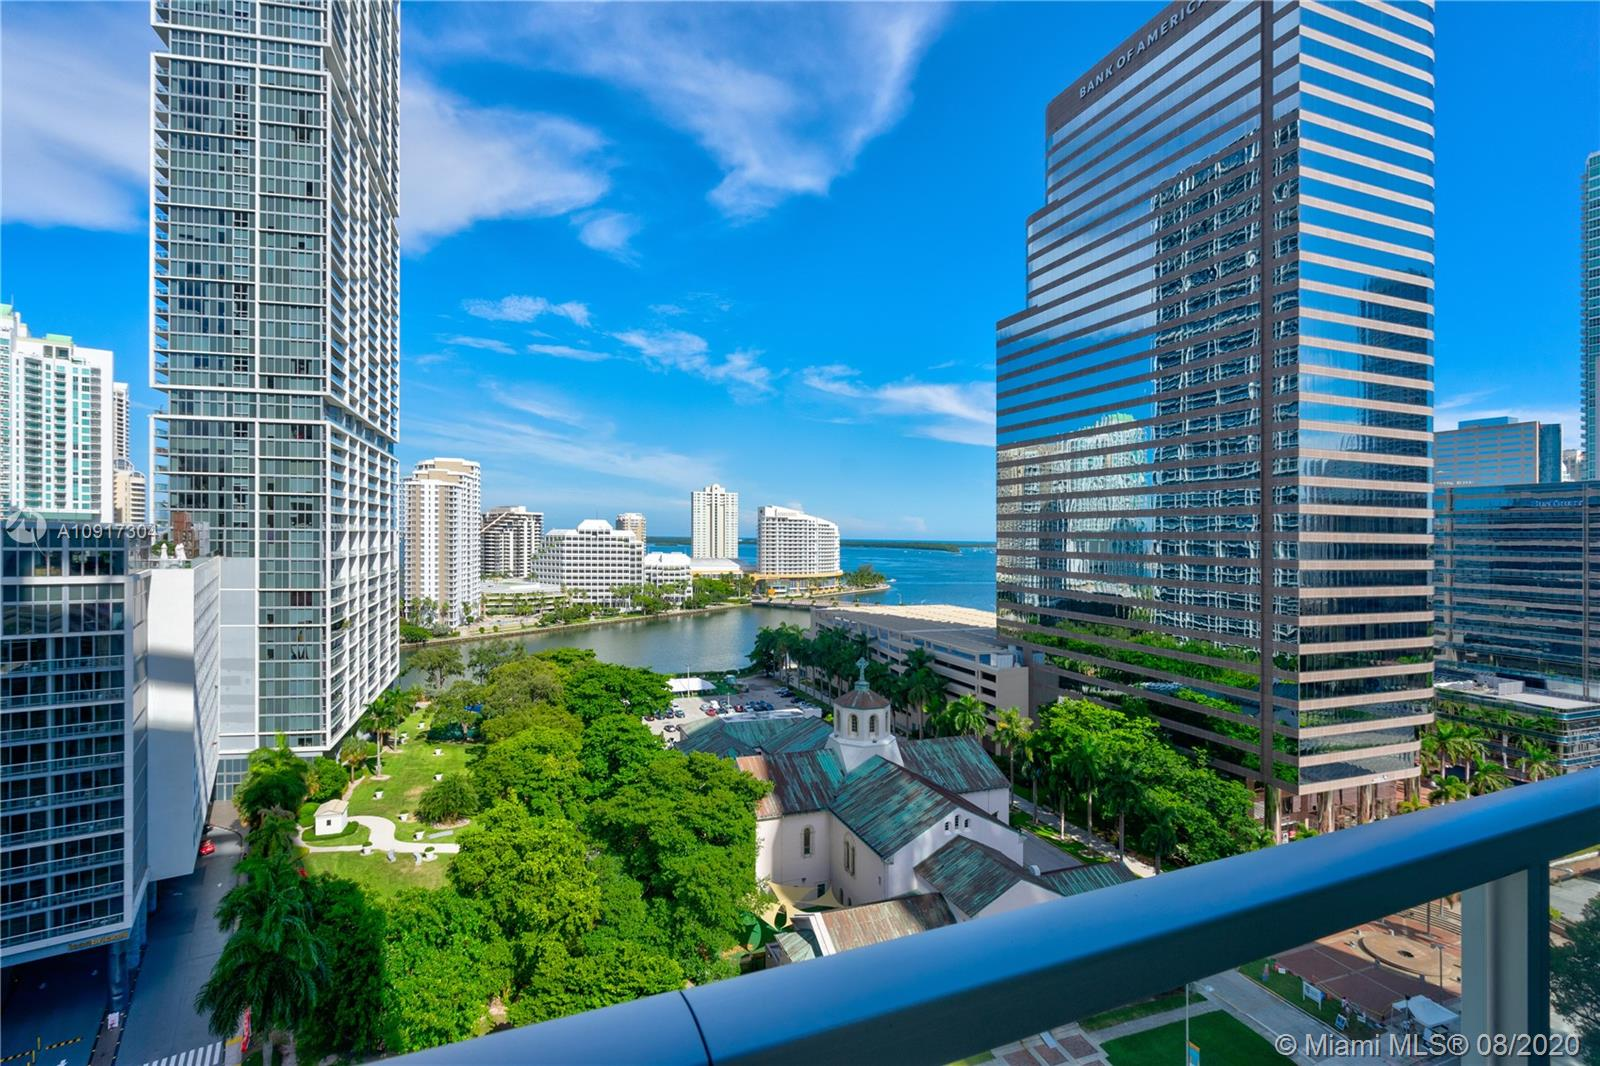 Amazing Turn Key 1 bedroom + Den with 1 Bathroom with incredible views from the Bay and City. European Style Kitchen with top of line appliances. Master Suite with great view, electric shade,  huge bathroom with separate Tub and Glass Shower. One Assign Parking Space. Fine and great Taste in all details at this unit in the desirable 500 Brickell. Building has great amenities like 3 Pools ( one of them located at 42nd floor with panoramic view, Theater, Sports Bar Room, Spa and other features.  Located at the heart of Brickell, near the great restaurants, Brickell City Centre Mall and other great things. You Must see!!